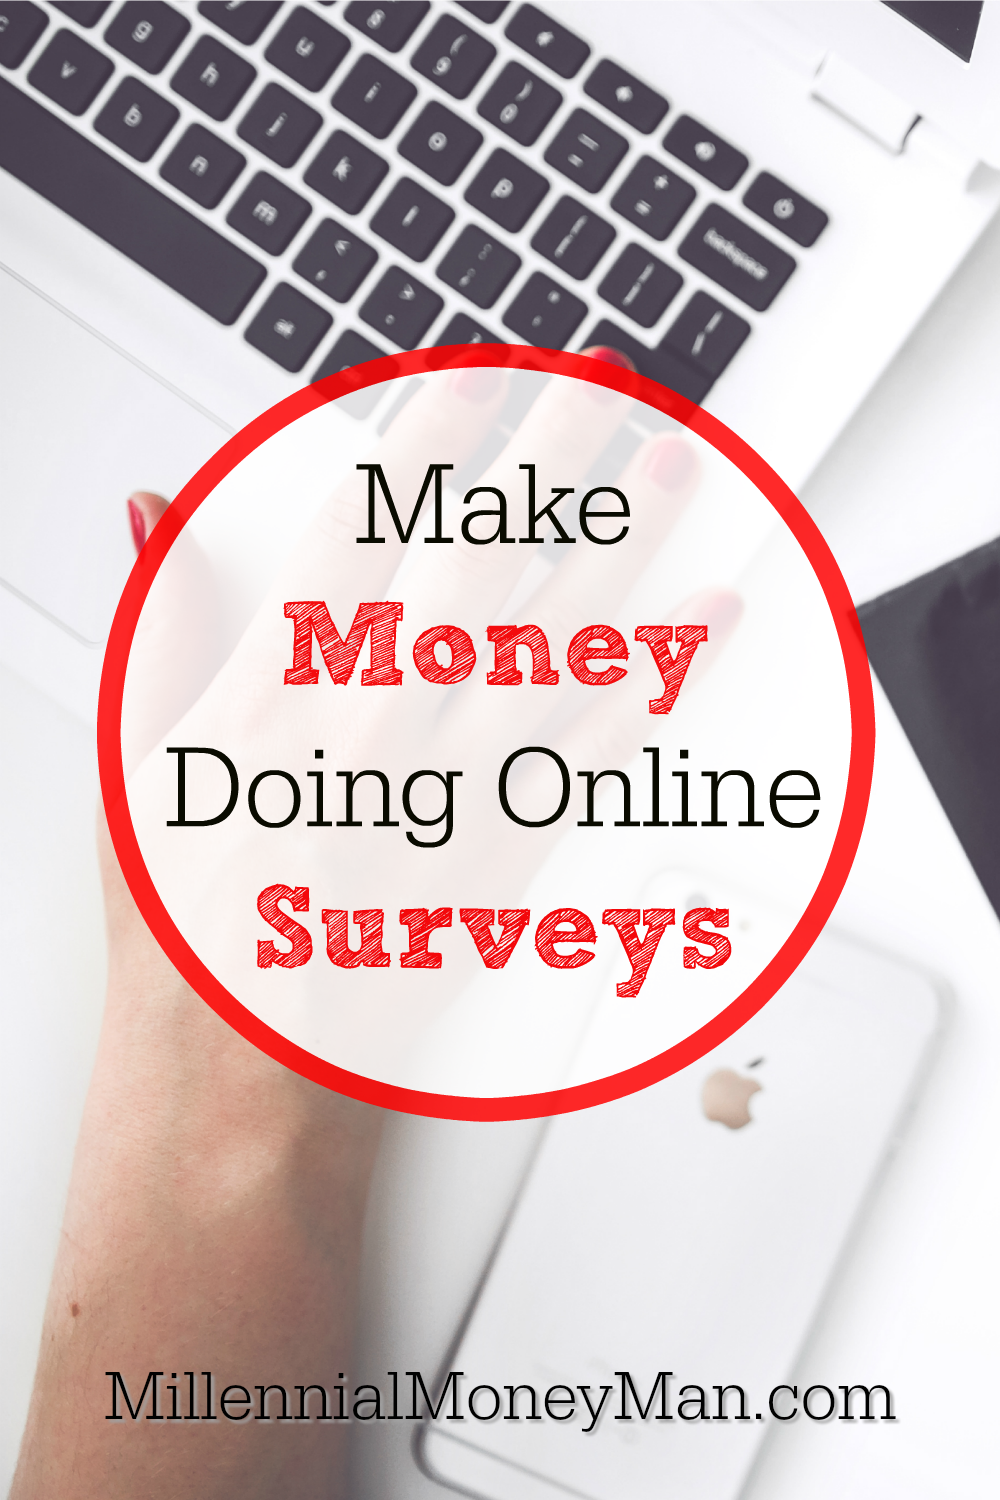 Want to make money online? Check out these honest, reliable online survey websites that let you make money from your computer.